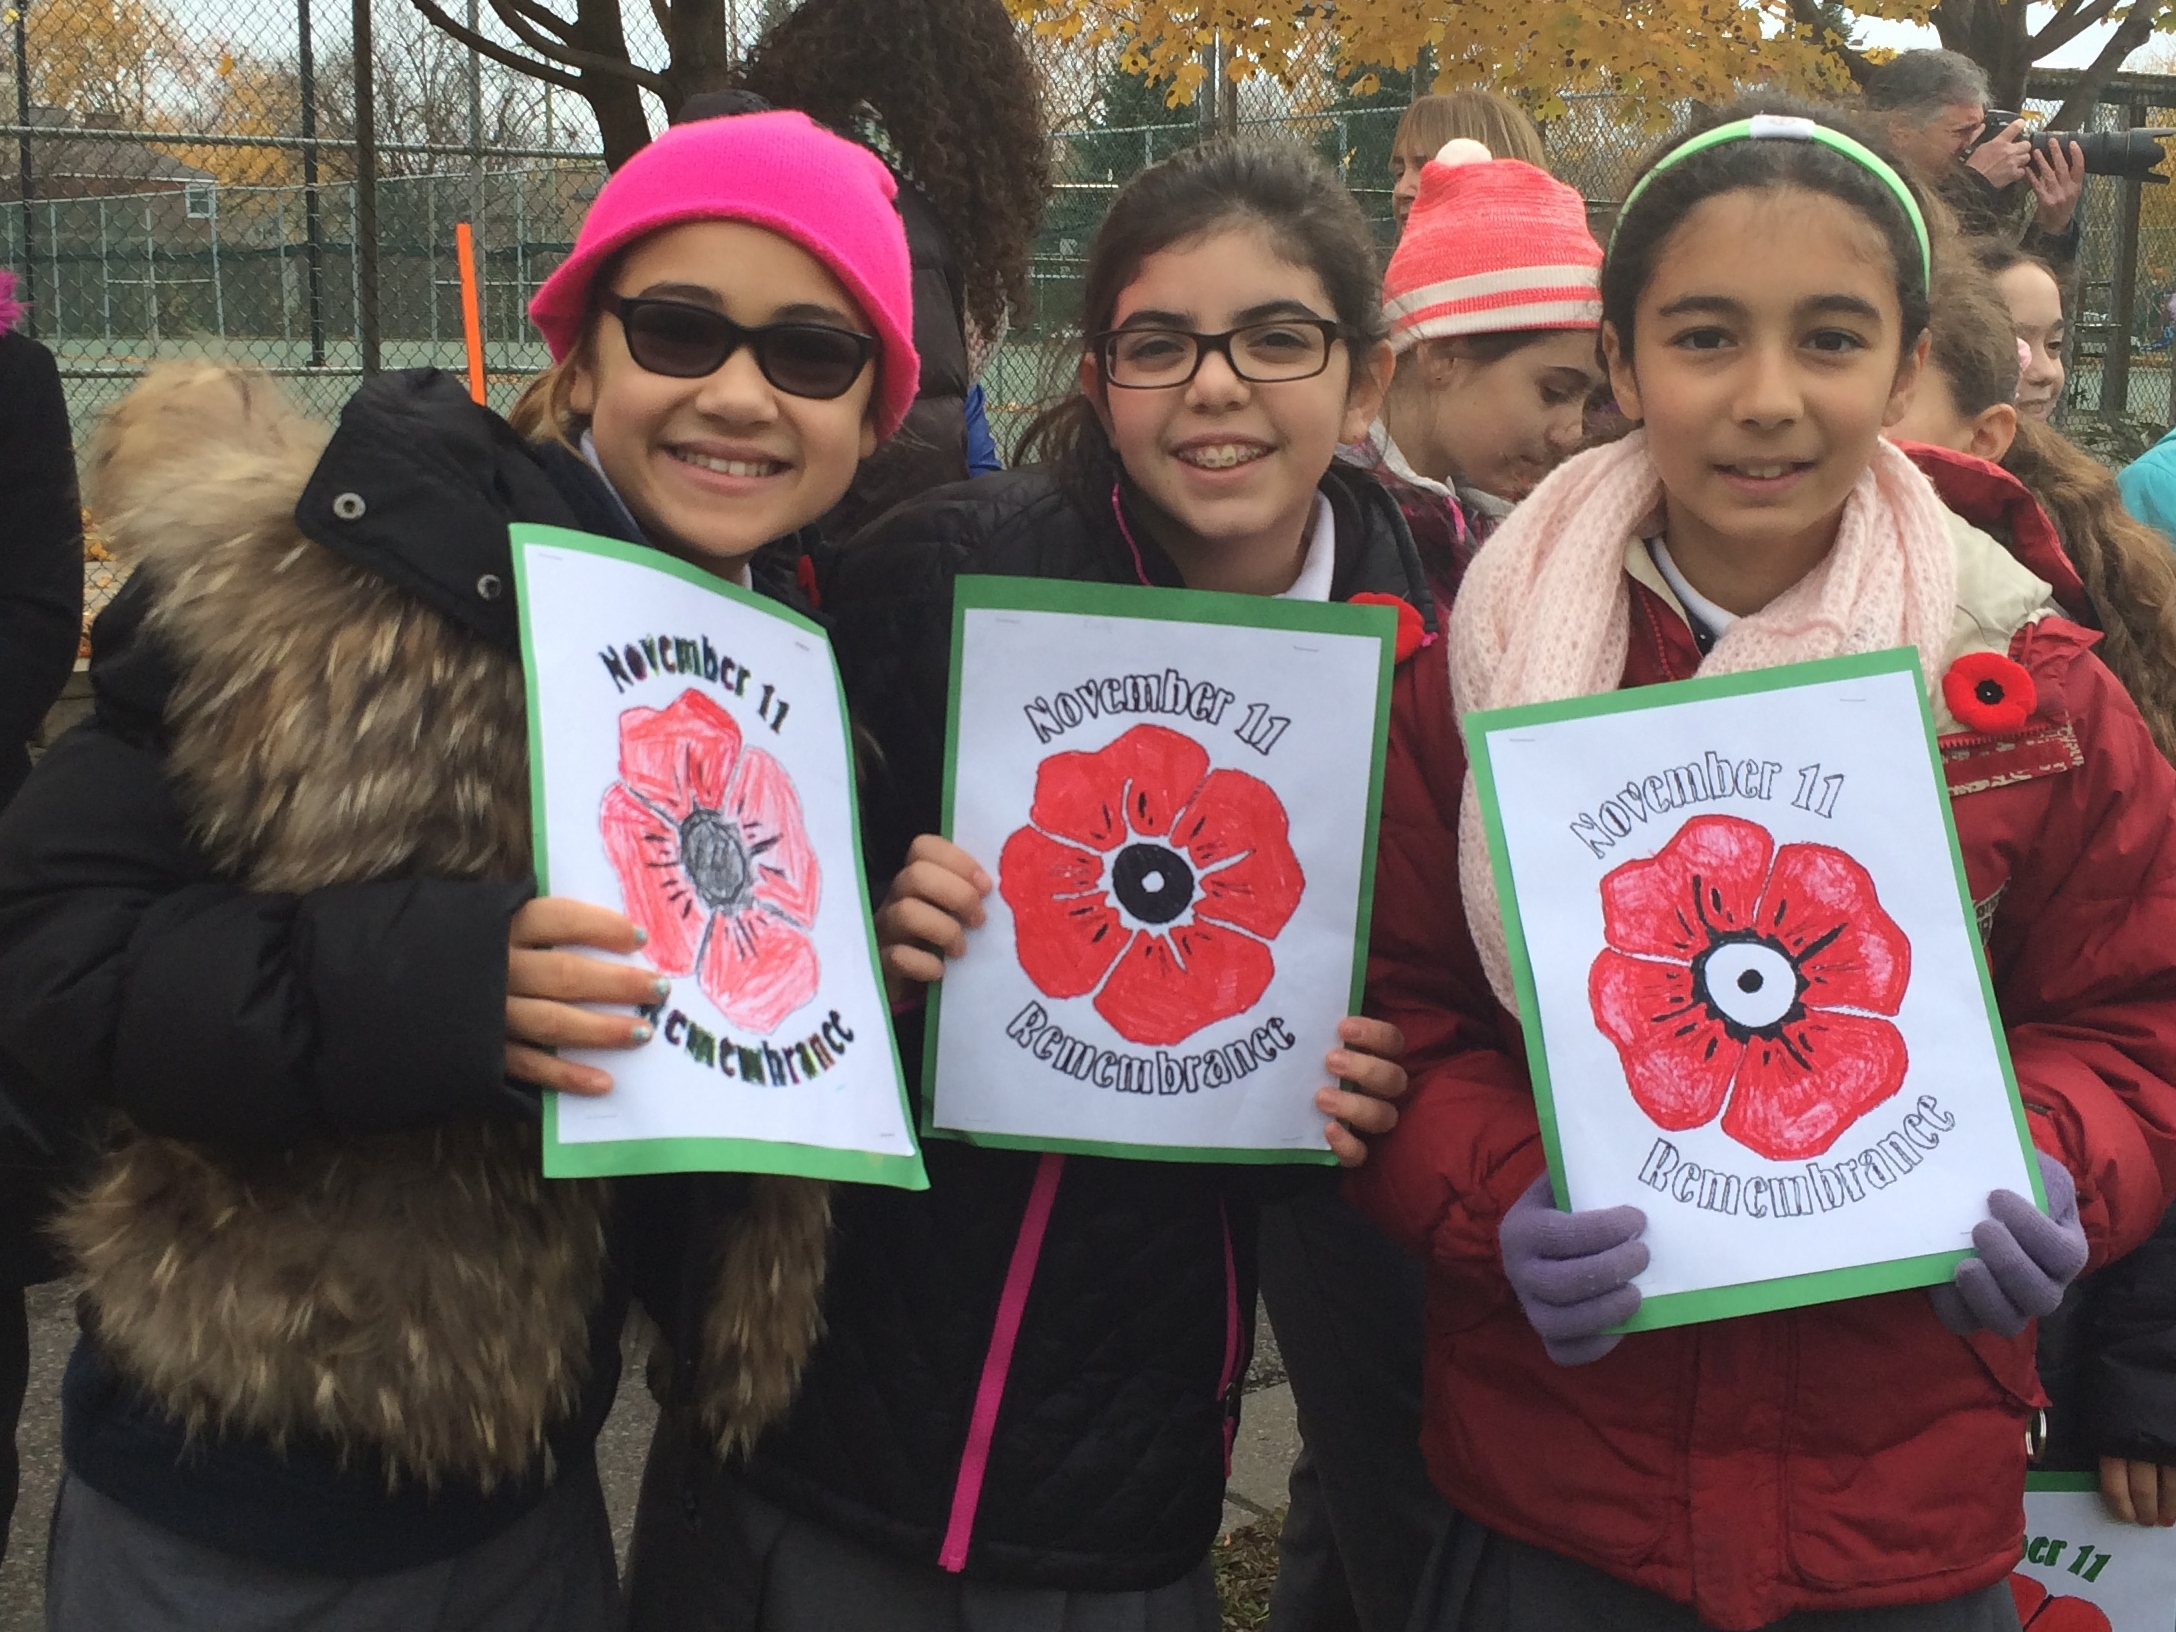 importance of remembrance day Remembrance day is a memorial day observed in commonwealth of nations  member states  people per capita in uniform during the second world war than  any other part of the empire, remembrance day is still an important holiday.